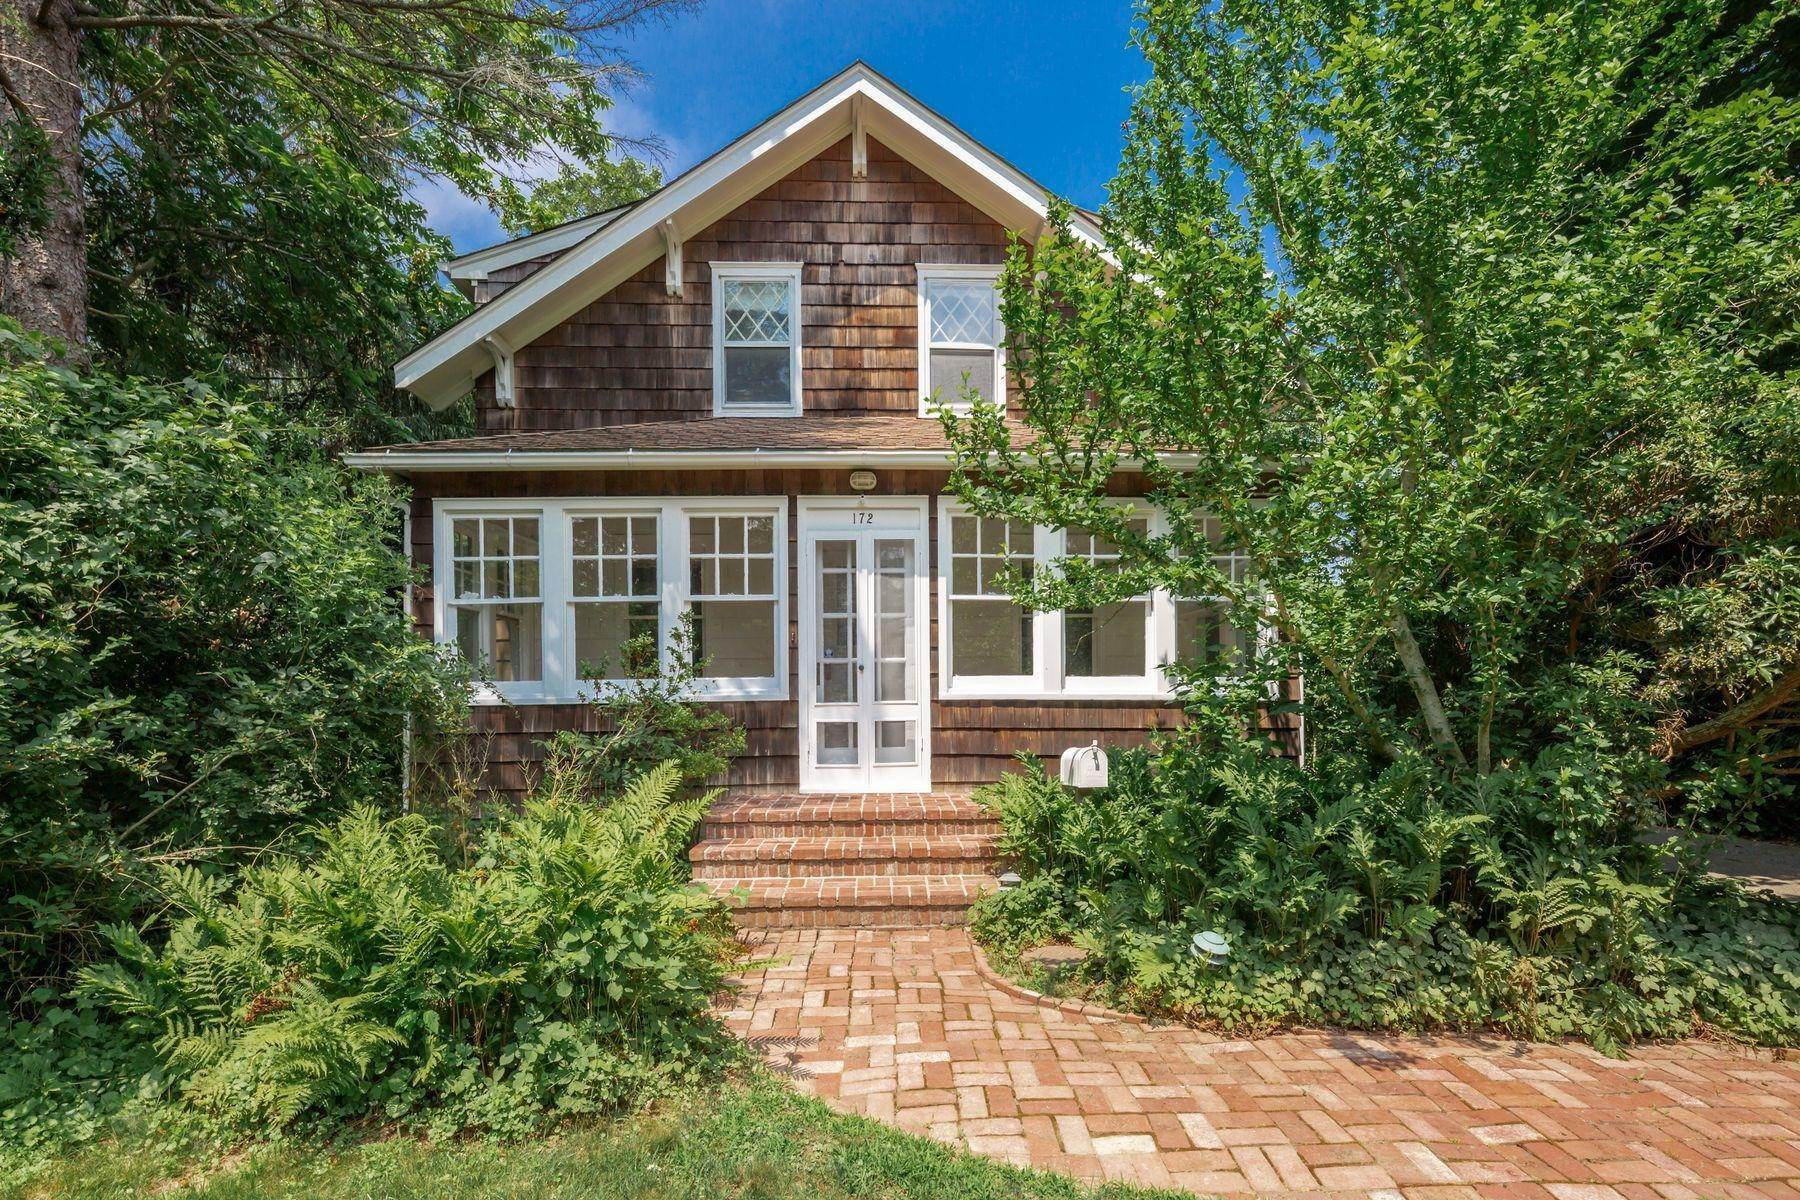 Single Family Home for Sale at East Hampton Village Privacy 172 Newtown Lane, East Hampton, NY 11937